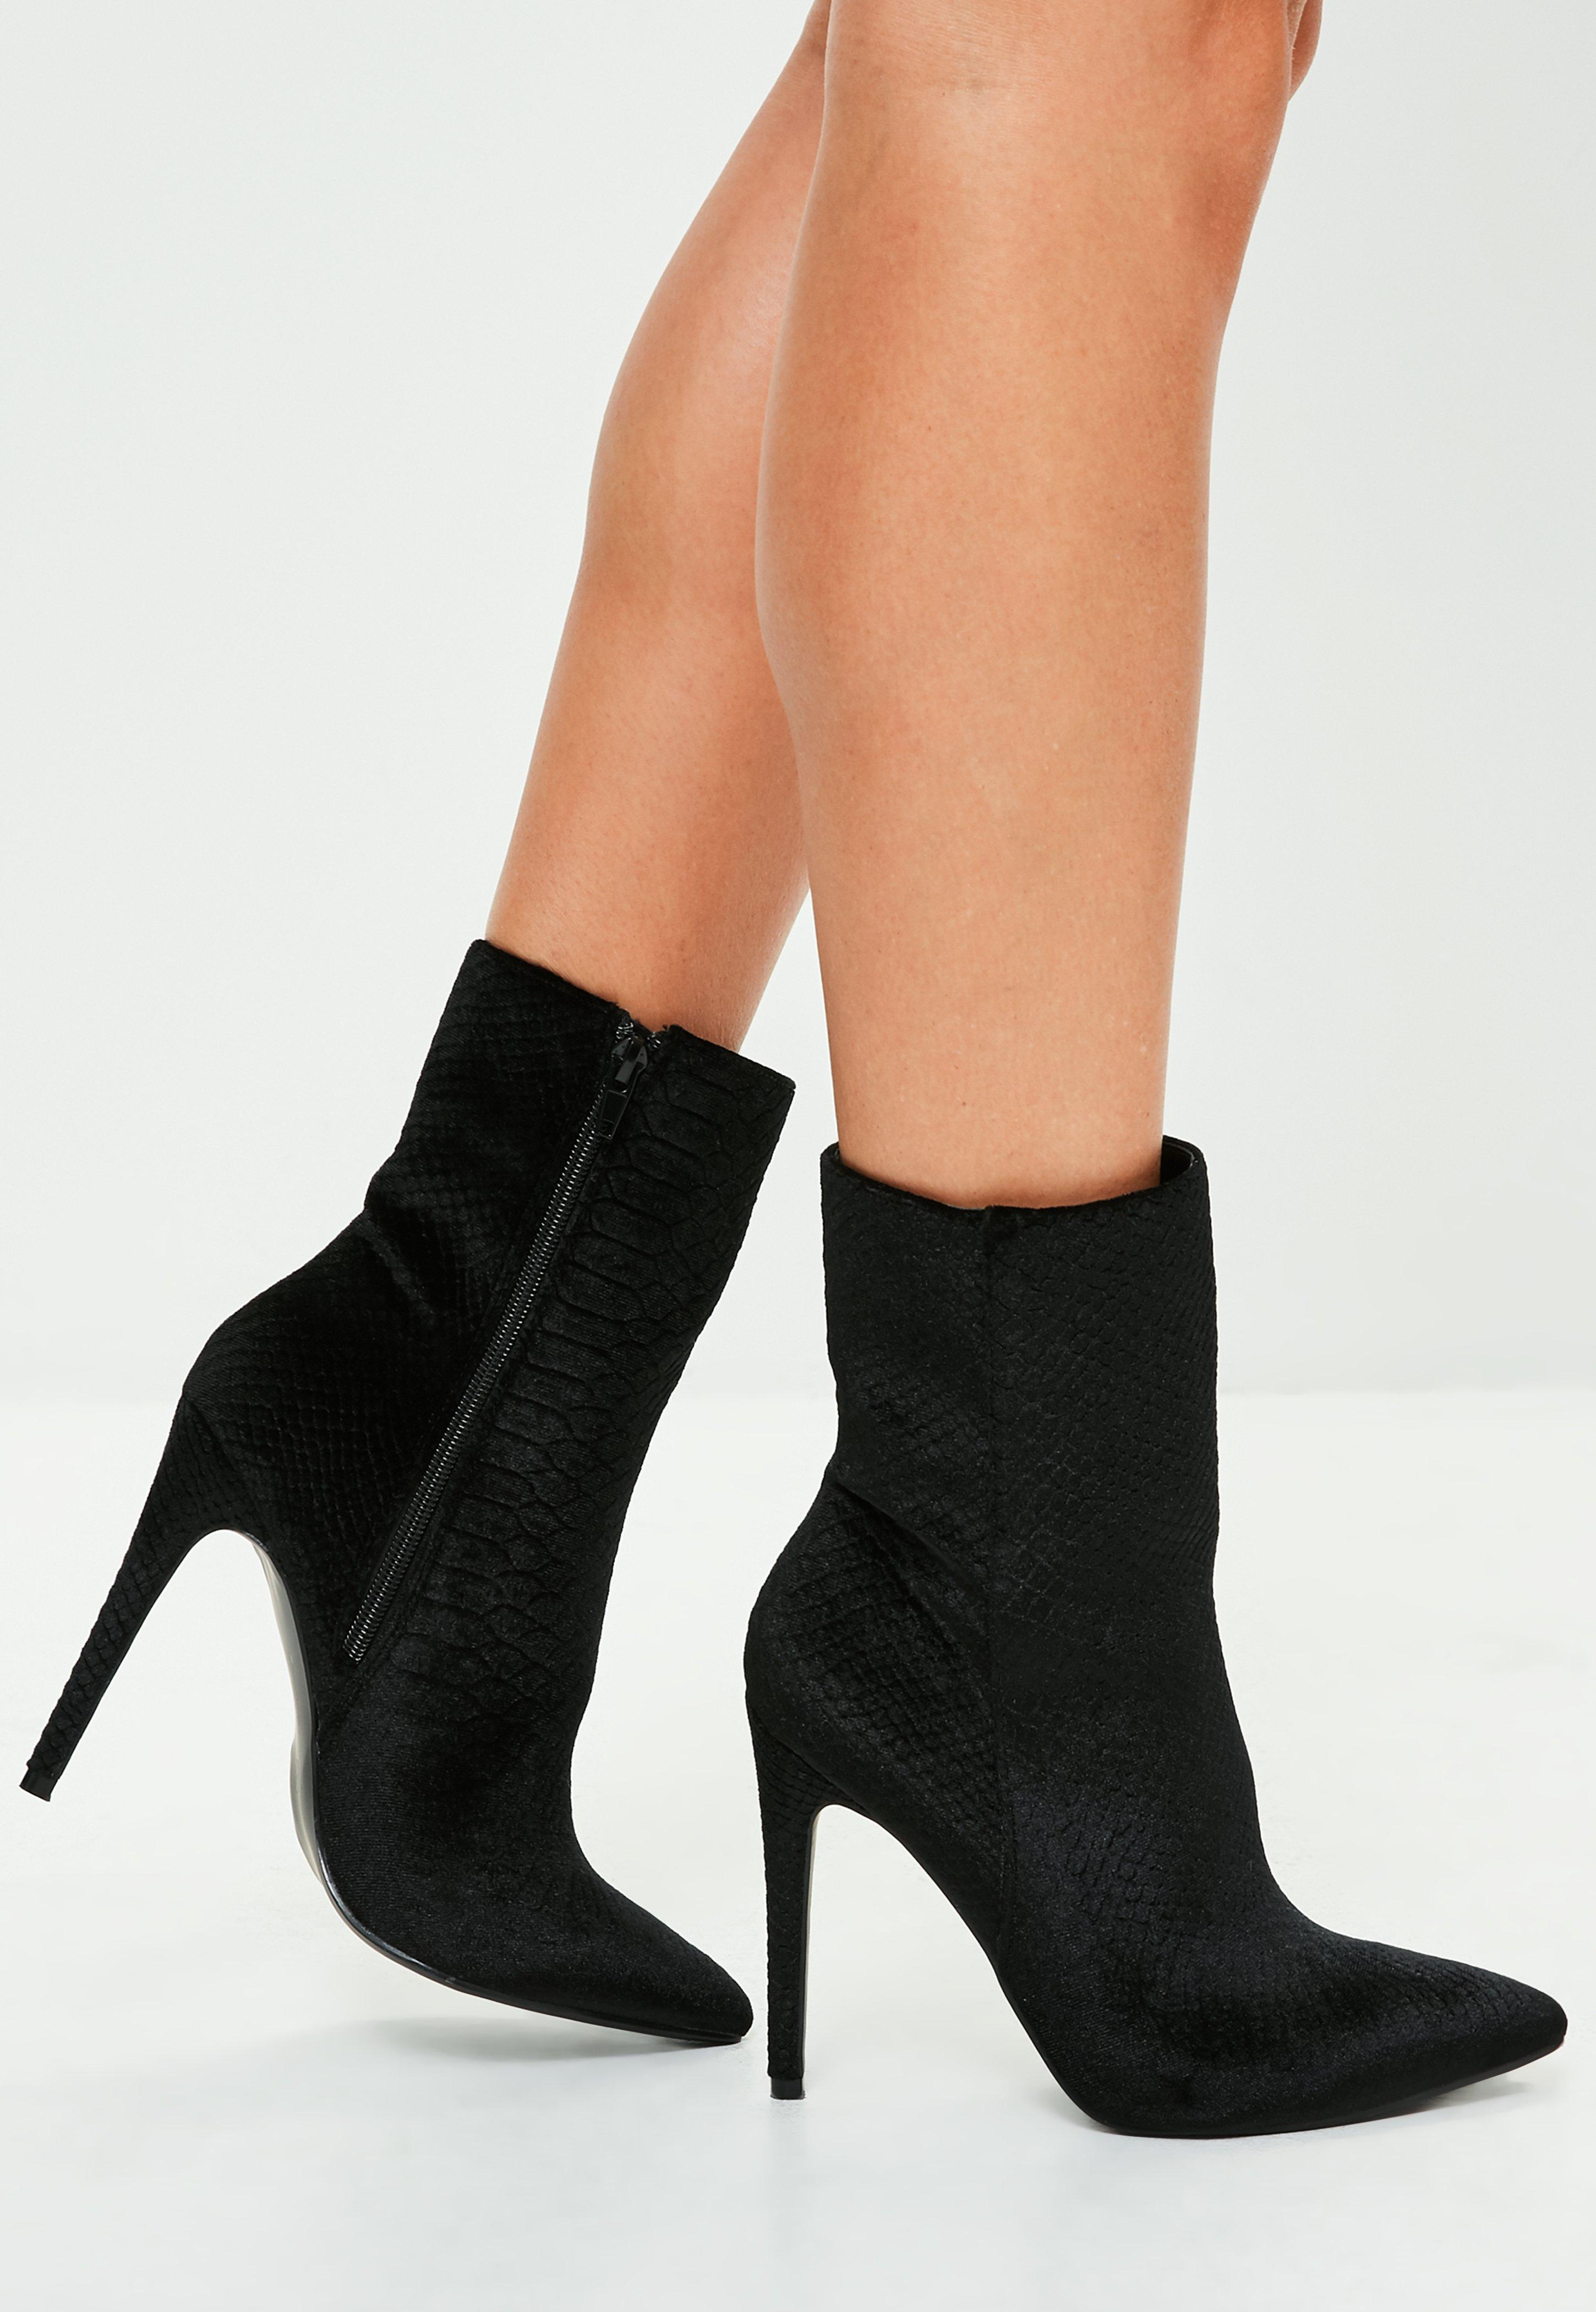 High Heels | Women's Stilettos Online UK - Missguided